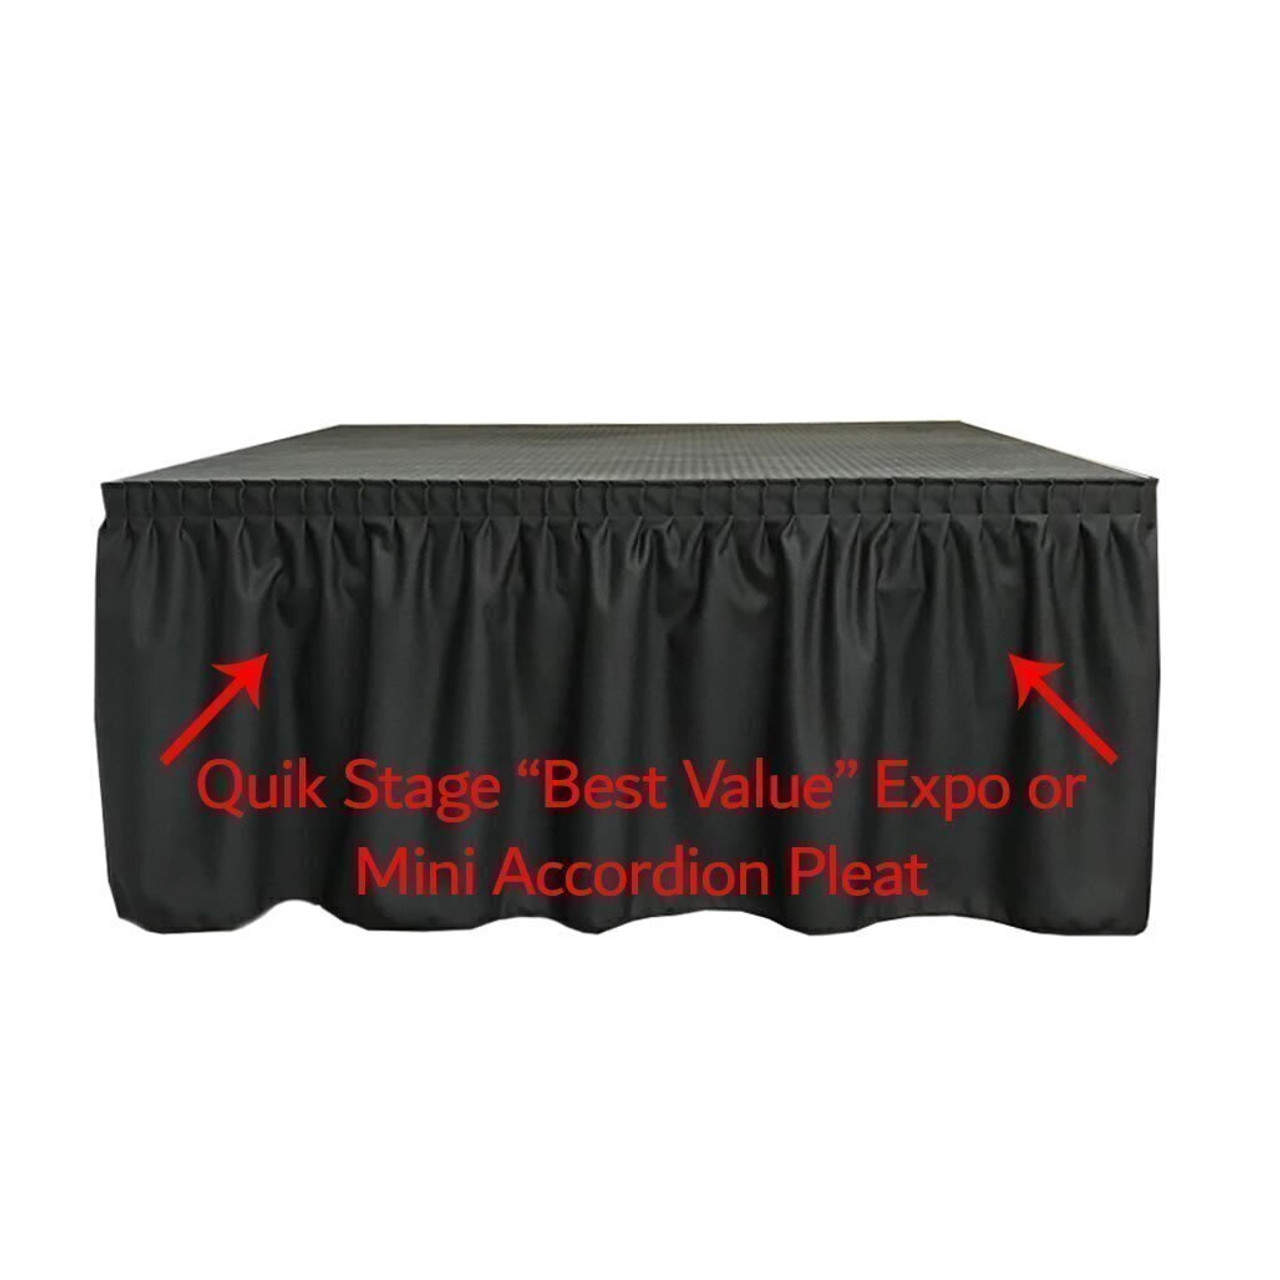 High Quality Quik Stage 4' x 36' High Portable Stage Package with Black Polyvinyl Non-Skid Surface. Additional Heights and Surfaces Available - Best Value Expo Pleat Stage Skirting